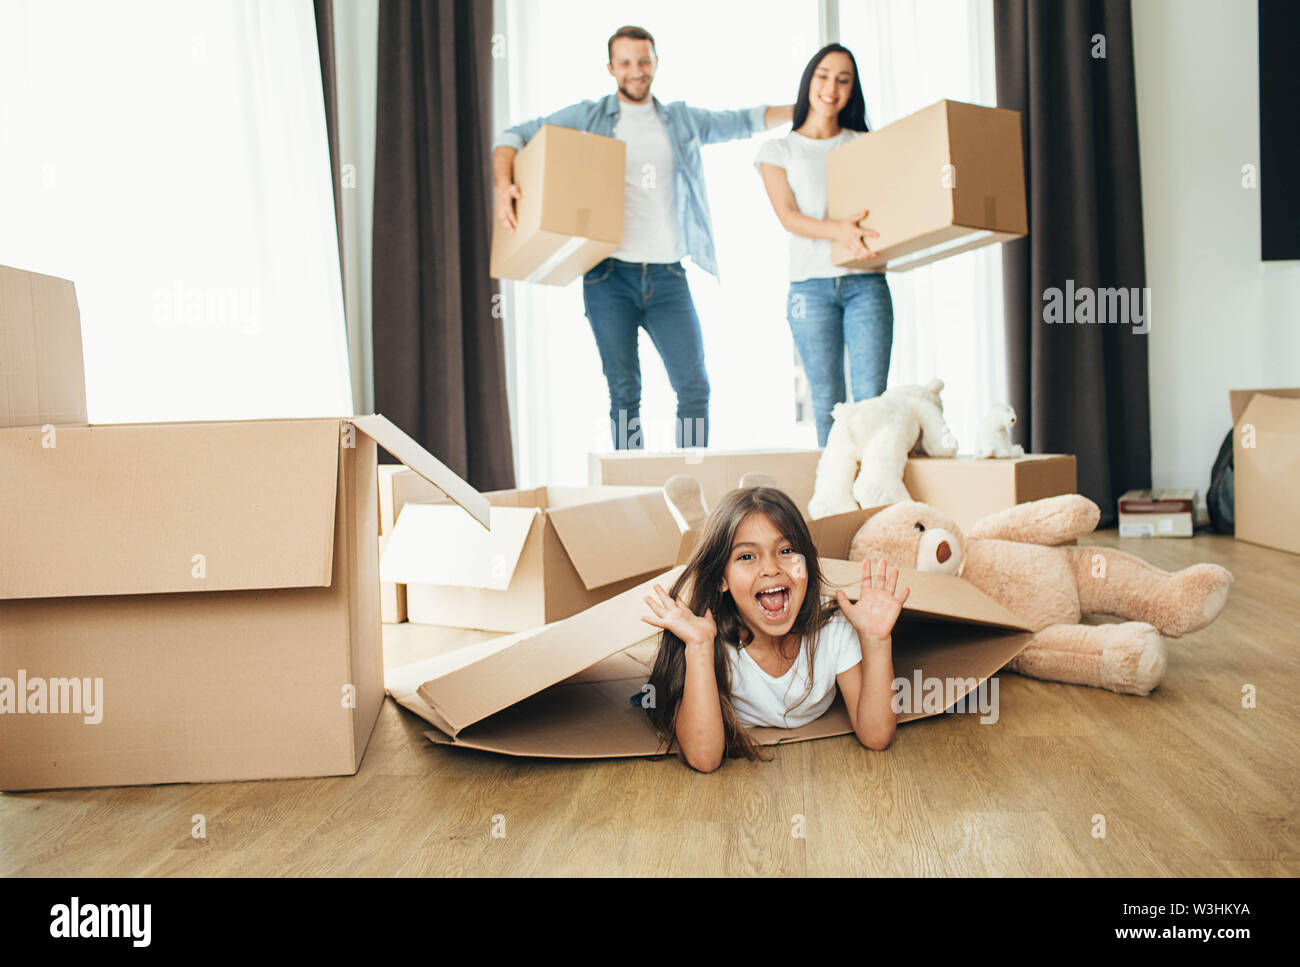 little girl playing with cardboard boxes. Daughter moving into new house with her parents - Stock Image